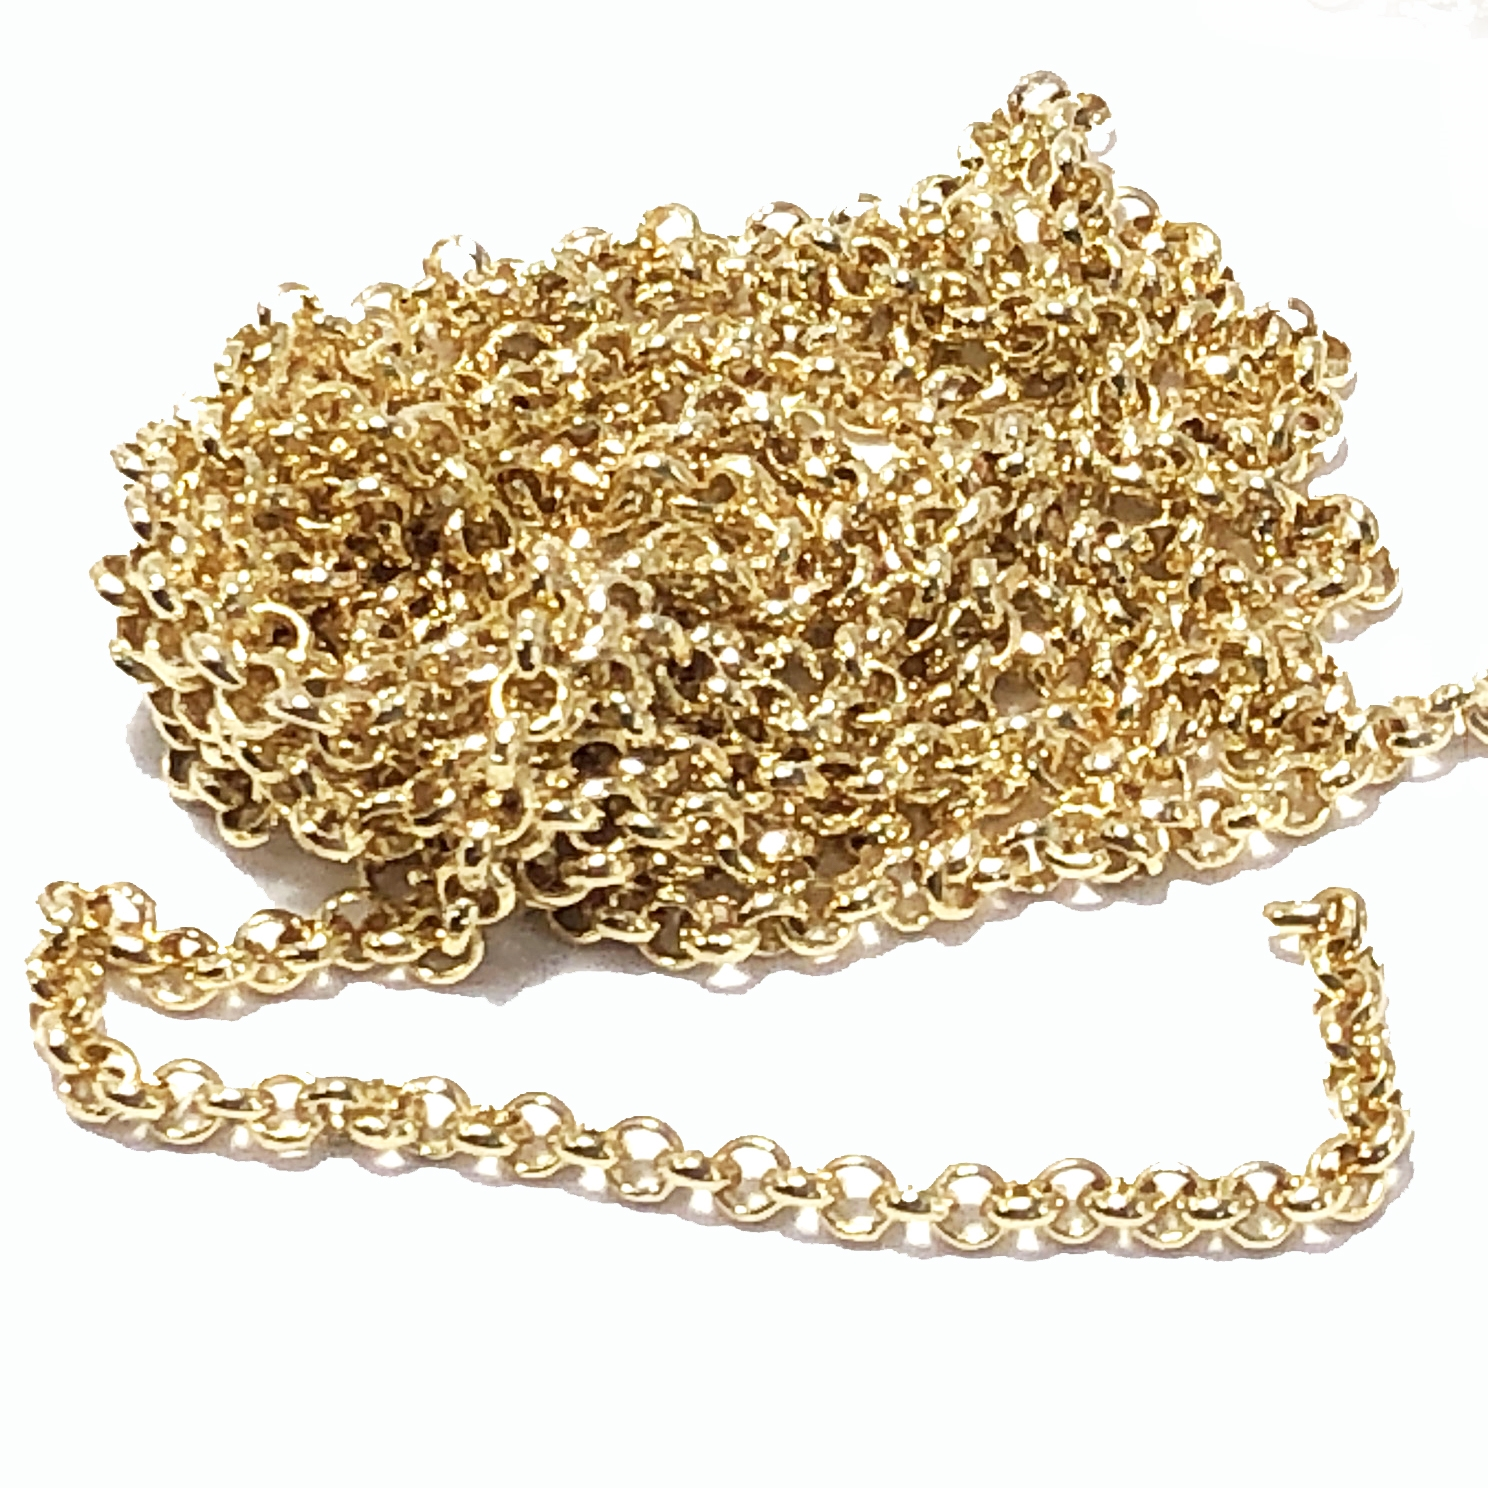 rolo chain, belcher chain, 2mm, gold plate, 09530, jewelry chain, jewelry making supplies, vintage jewelry supplies, charm chain, bsueboutiques, nickel free, US made chain